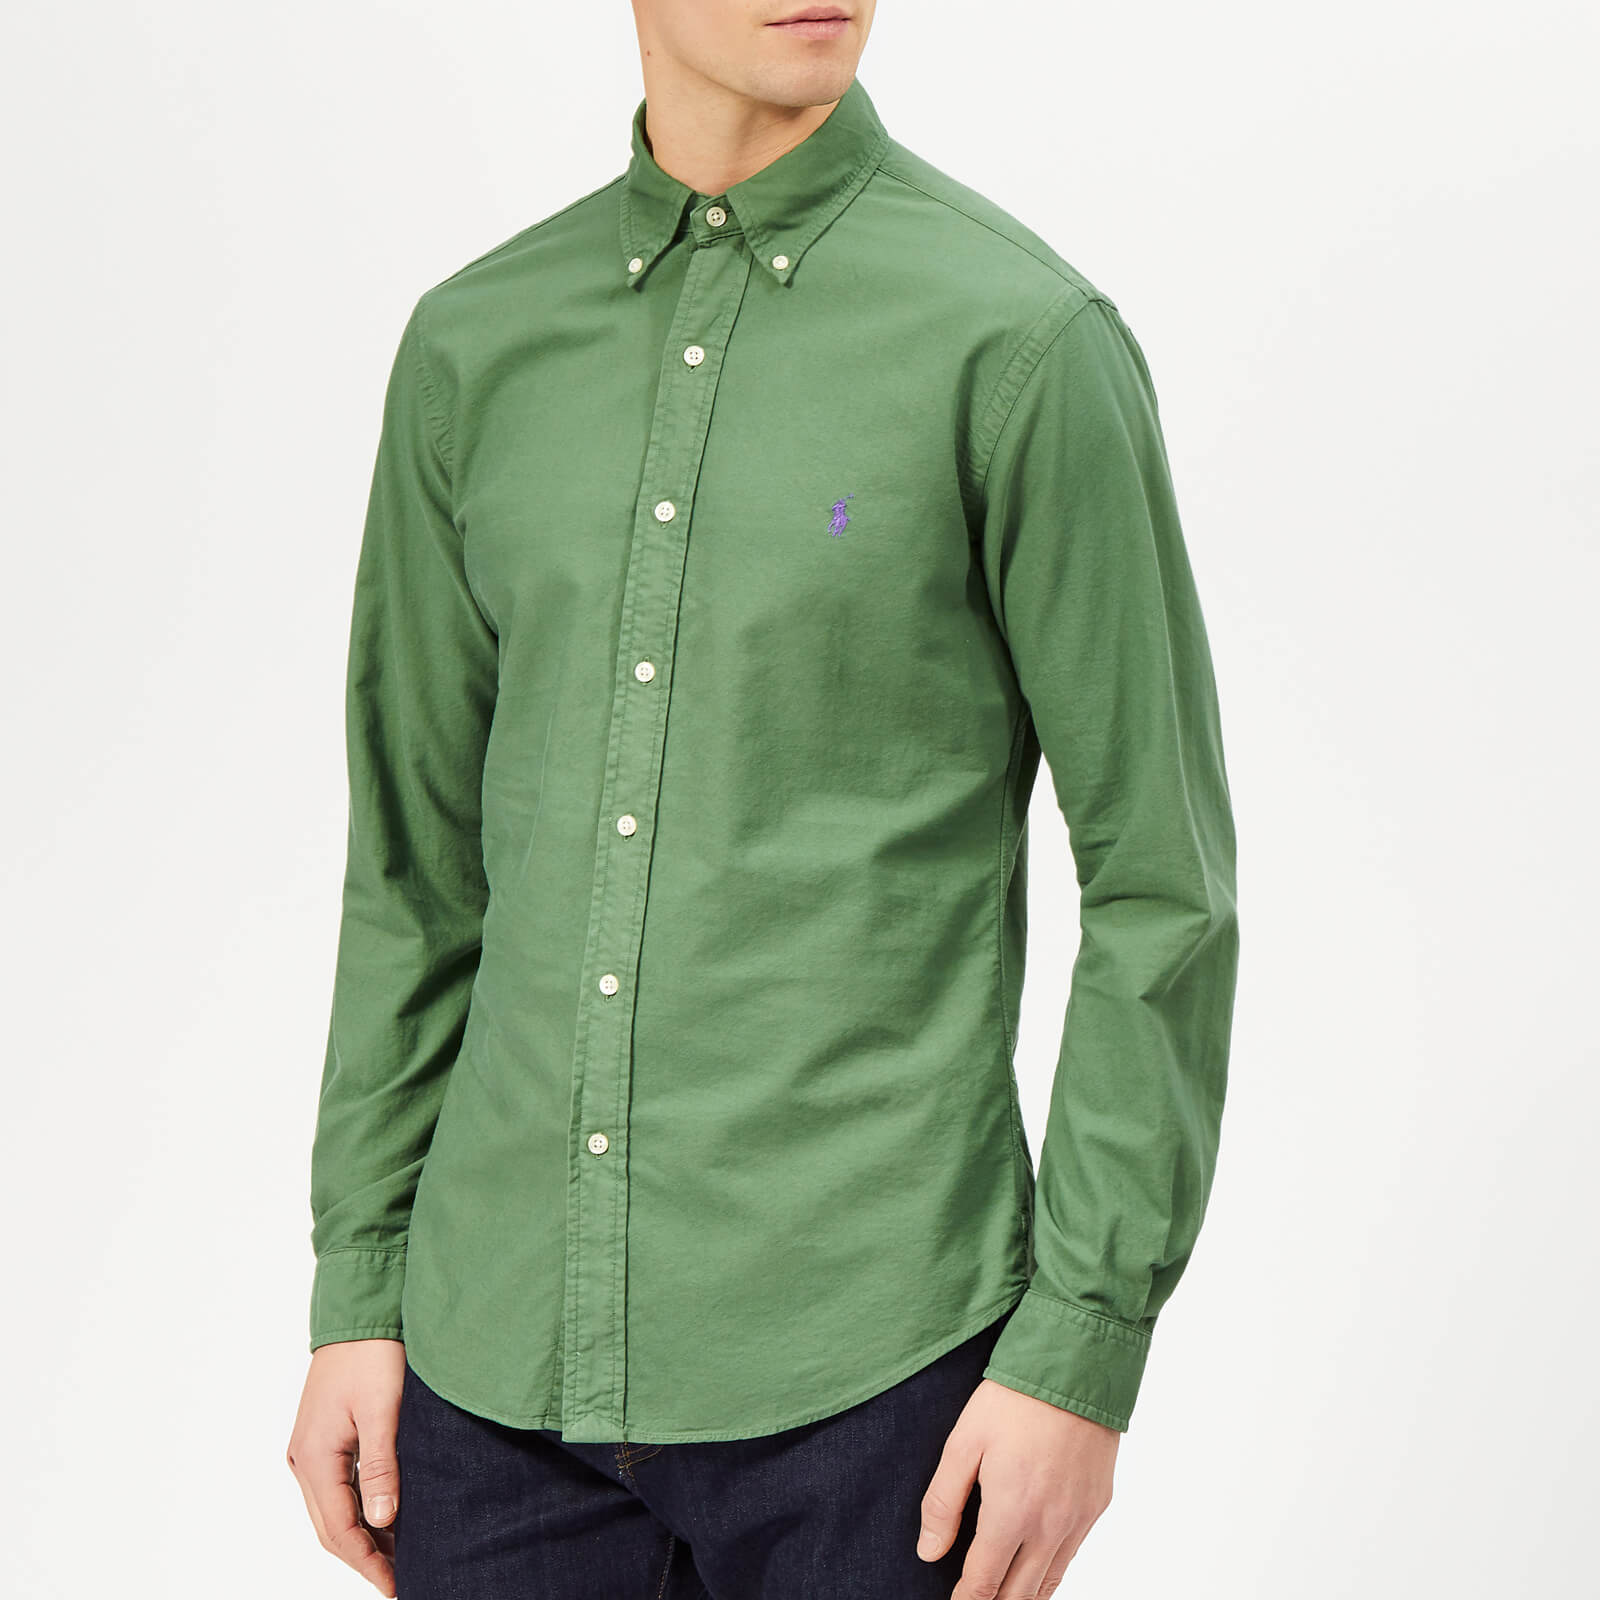 a06e563ed328 Polo Ralph Lauren Men s Garment Dyed Oxford Long Sleeve Shirt - Stuart Green  - Free UK Delivery over £50